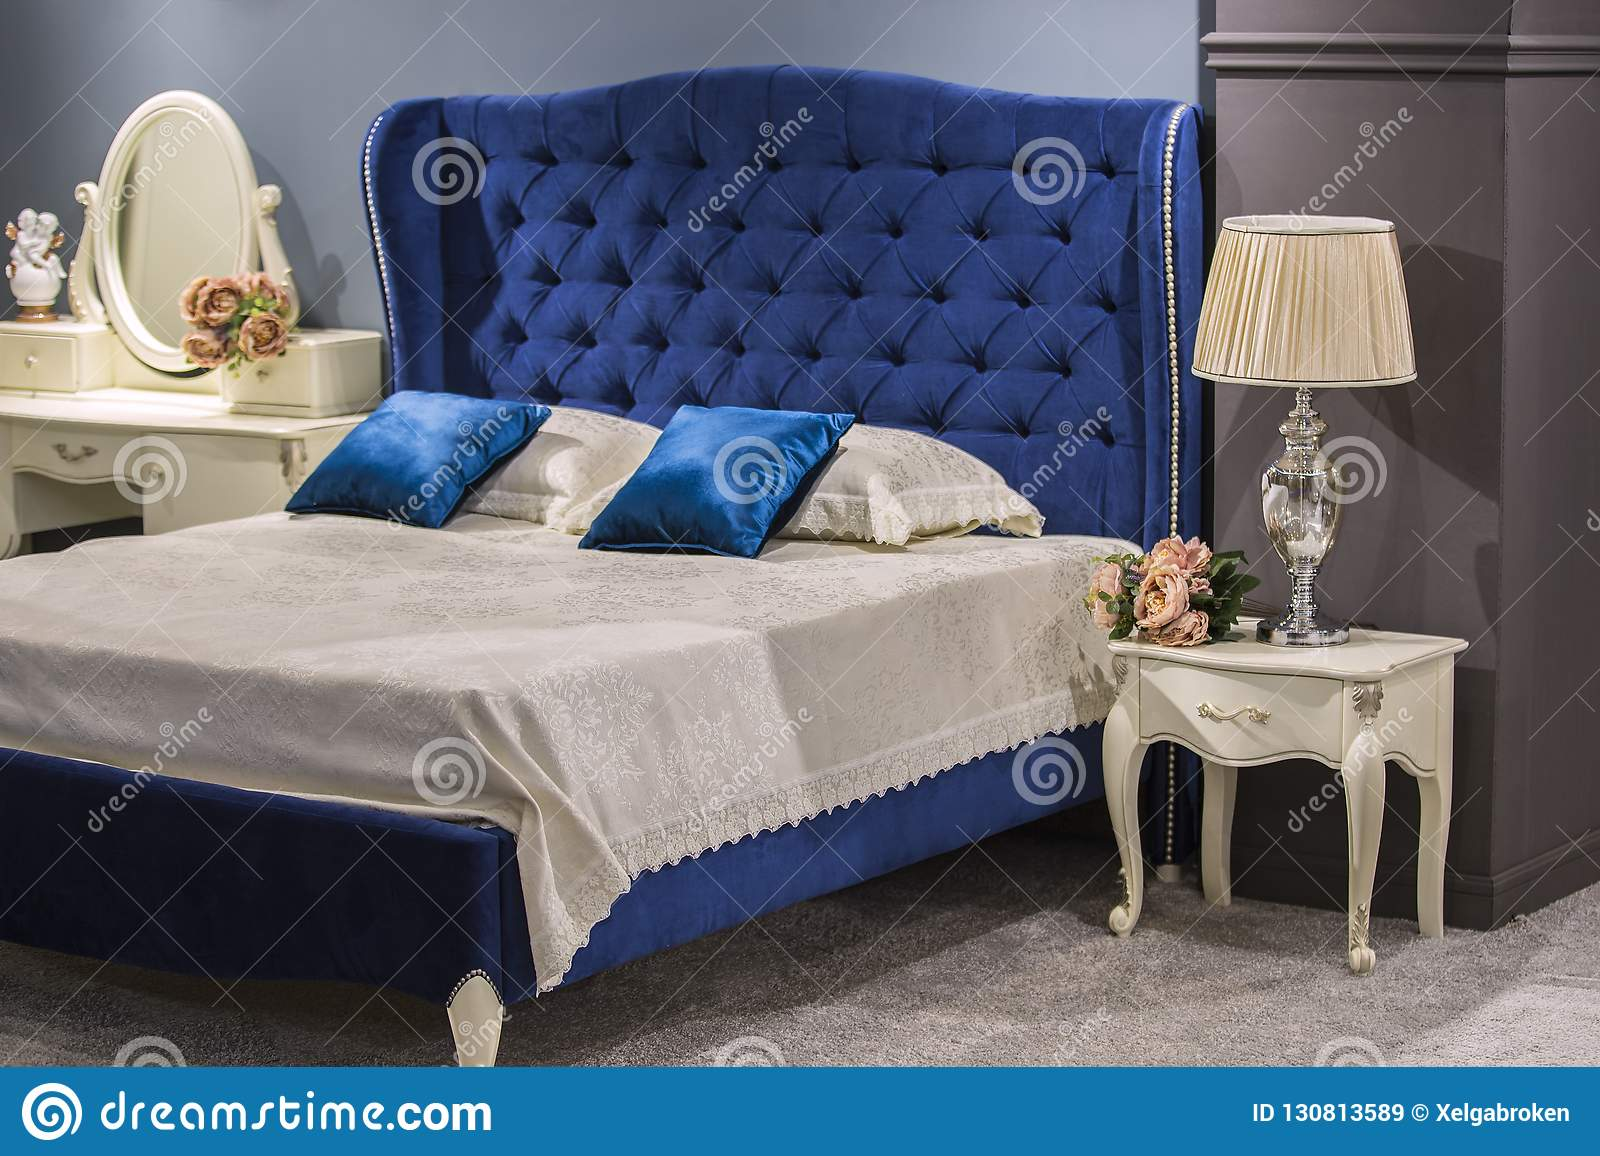 Luxury Royal Bedroom In Antique Style With Blue Velvet Bed And White Nightstand Stock Image Image Of Elegant Home 130813589